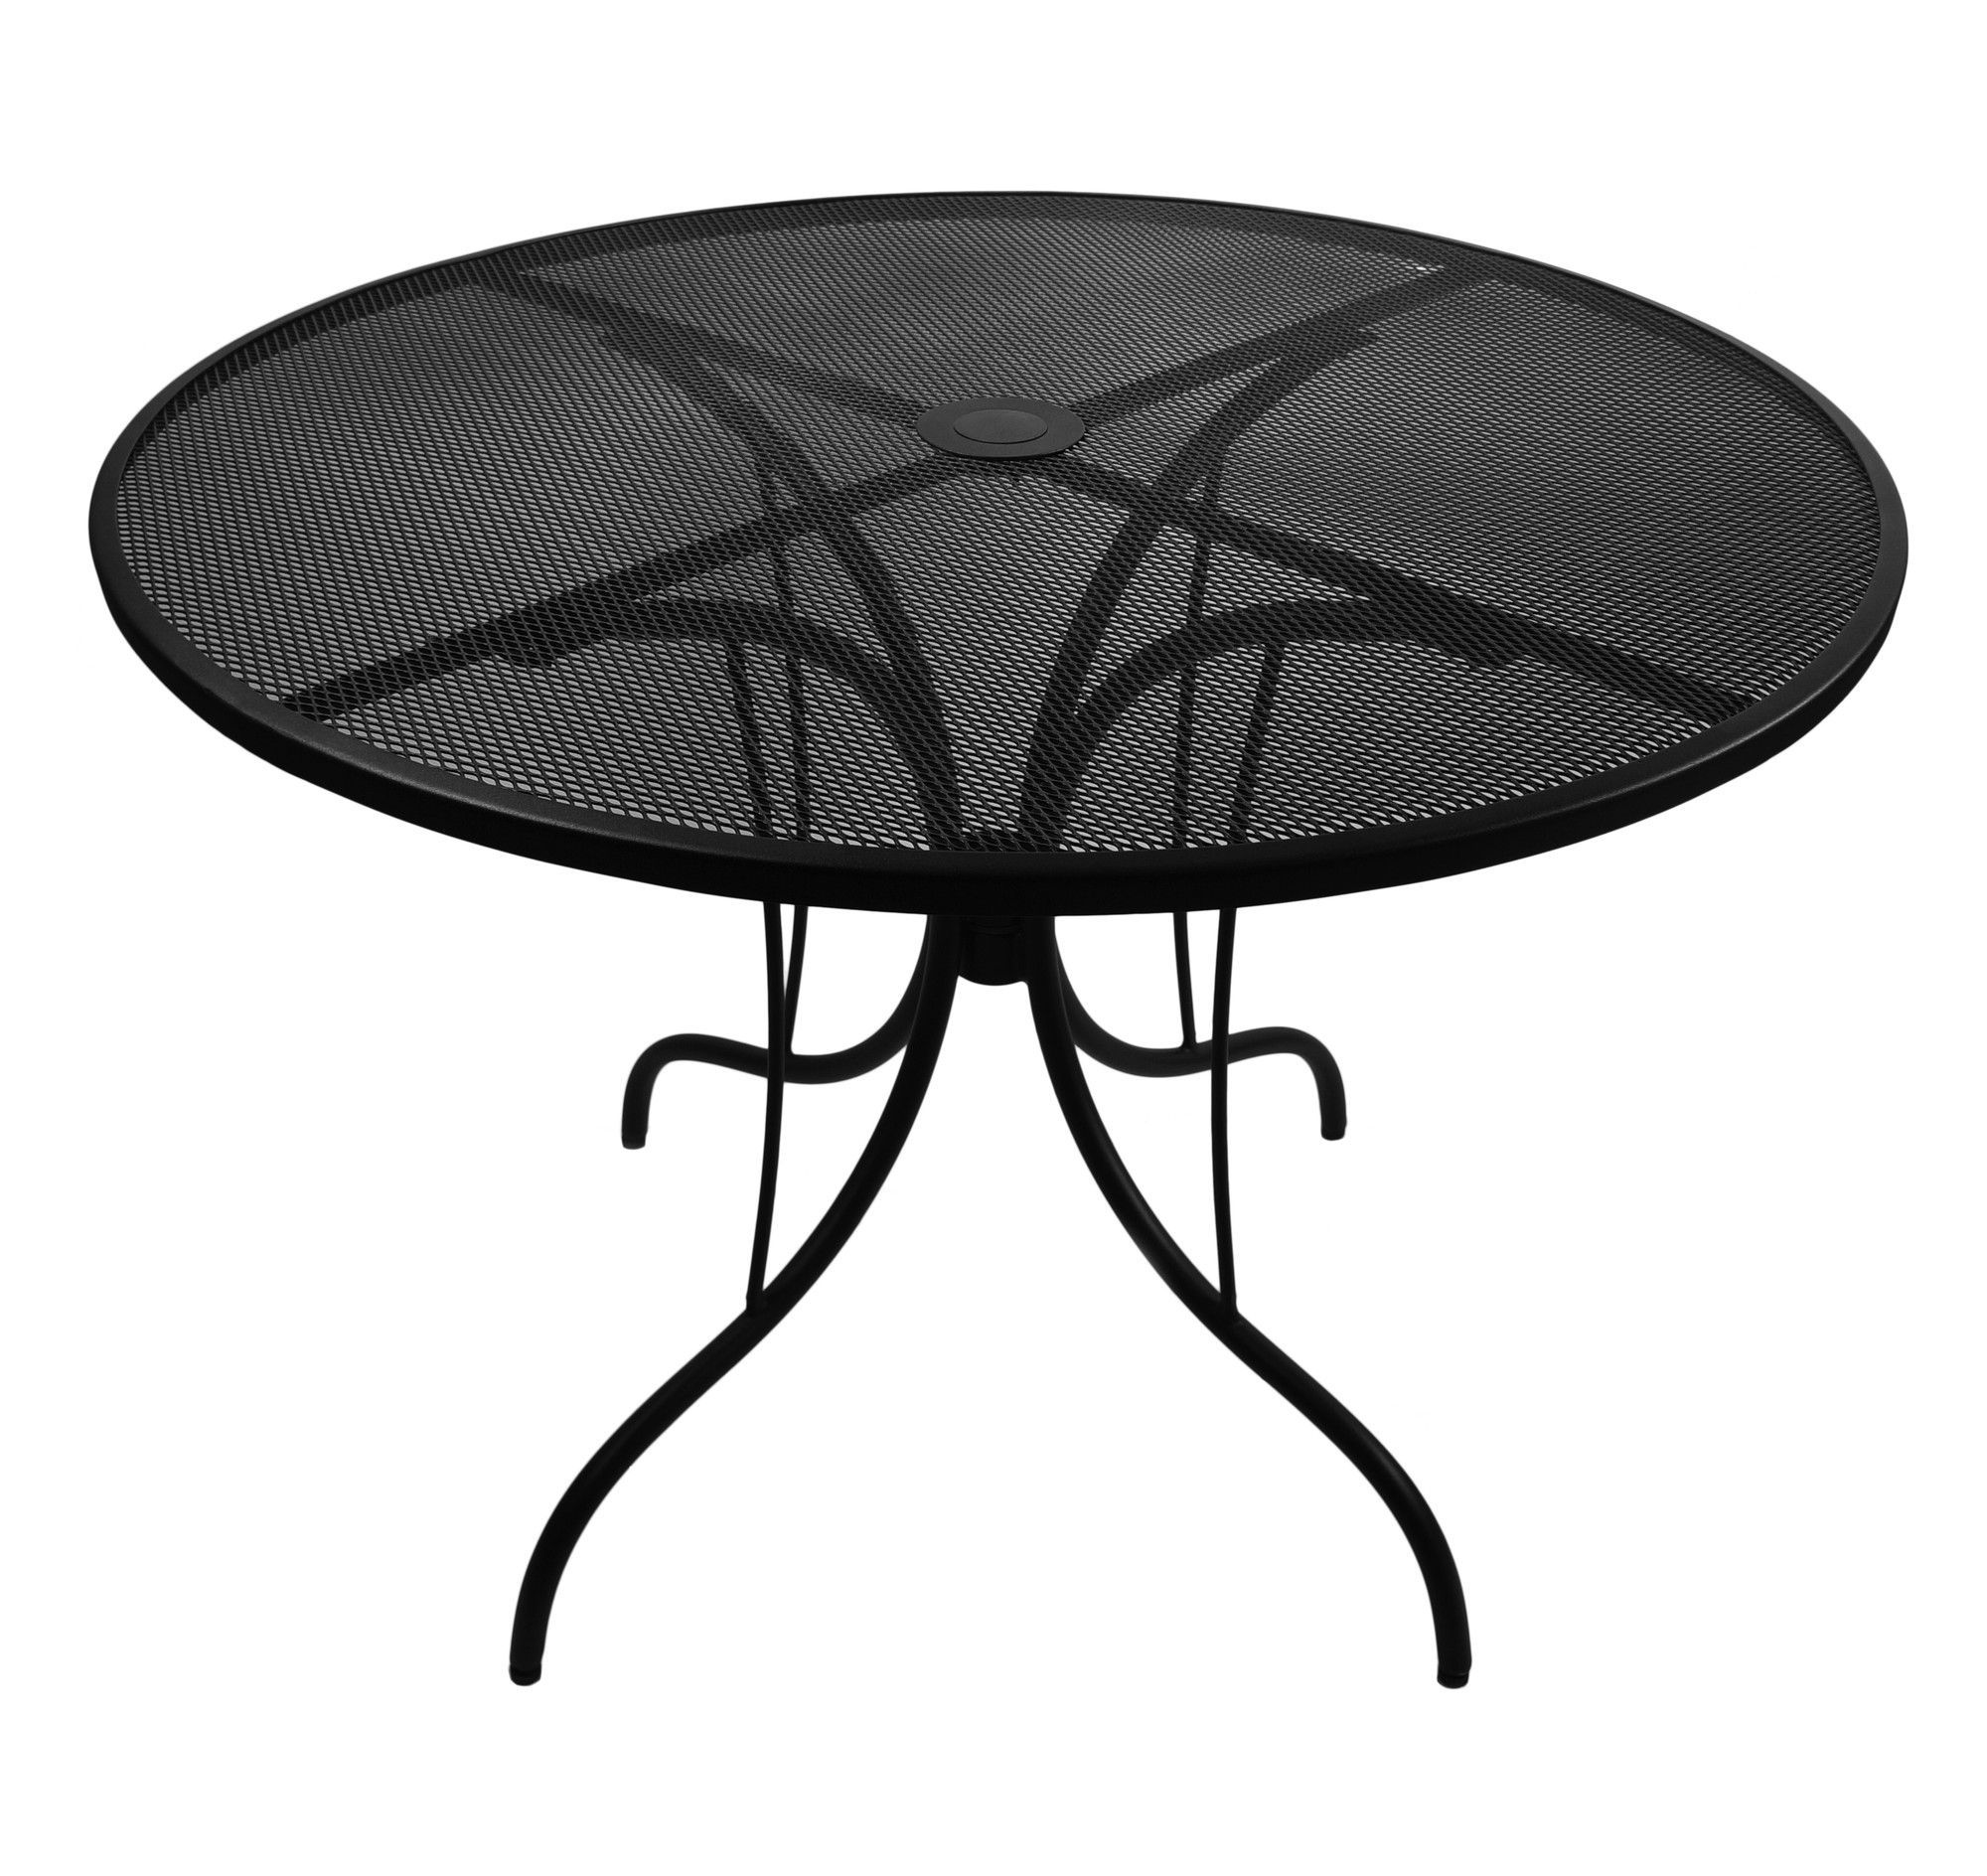 Dining Table Products Pinterest - Restaurant patio table tops